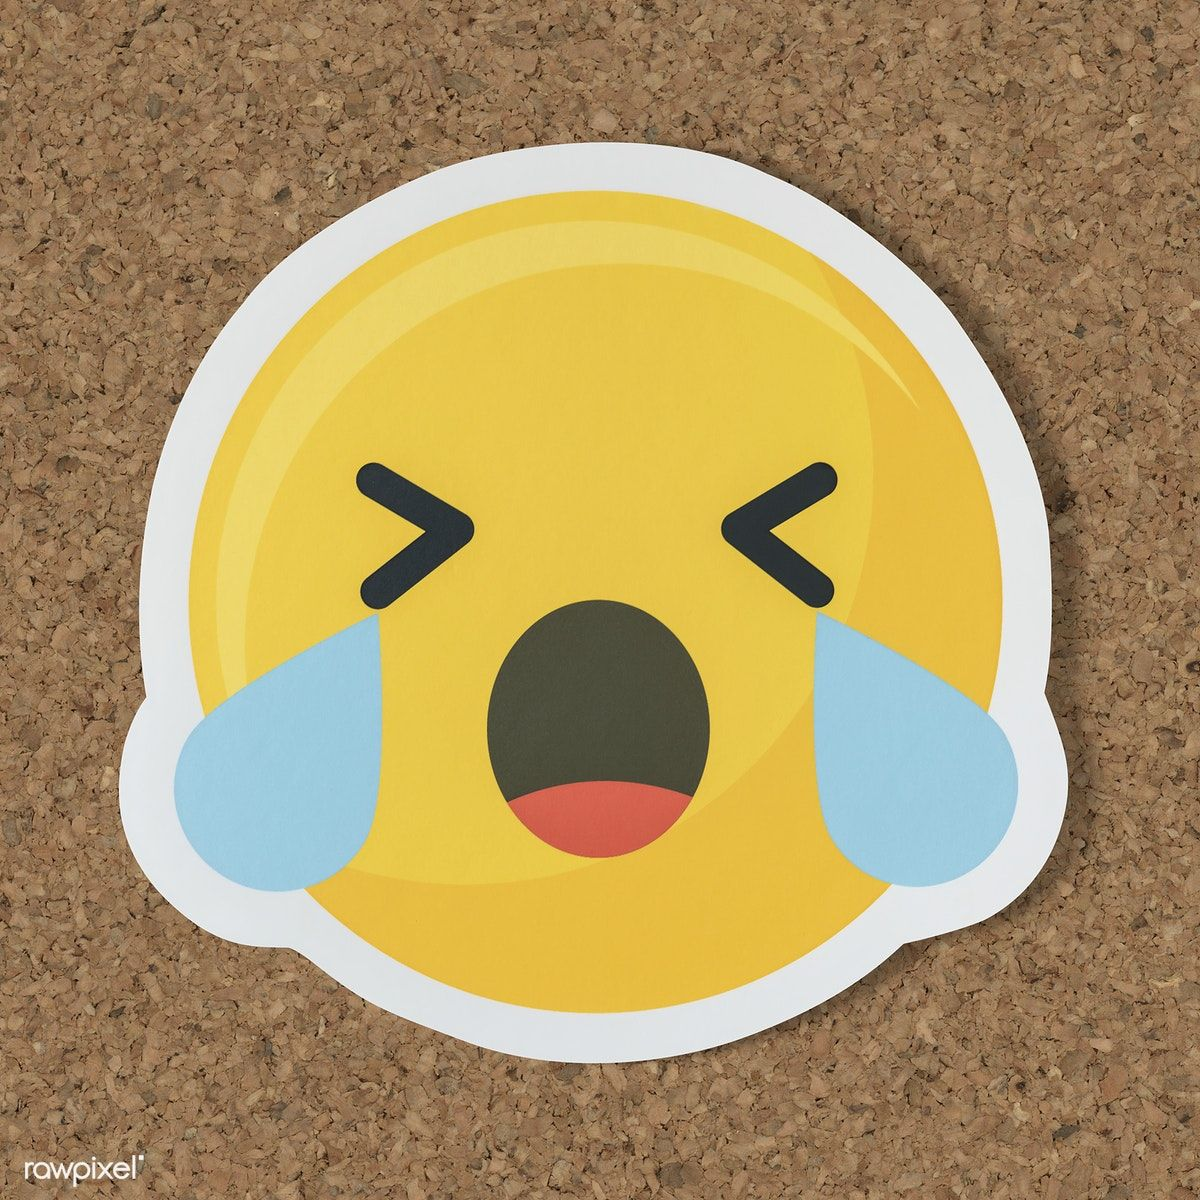 Sad Crying Face Emoticon Symbol Free Image By Rawpixel Paper